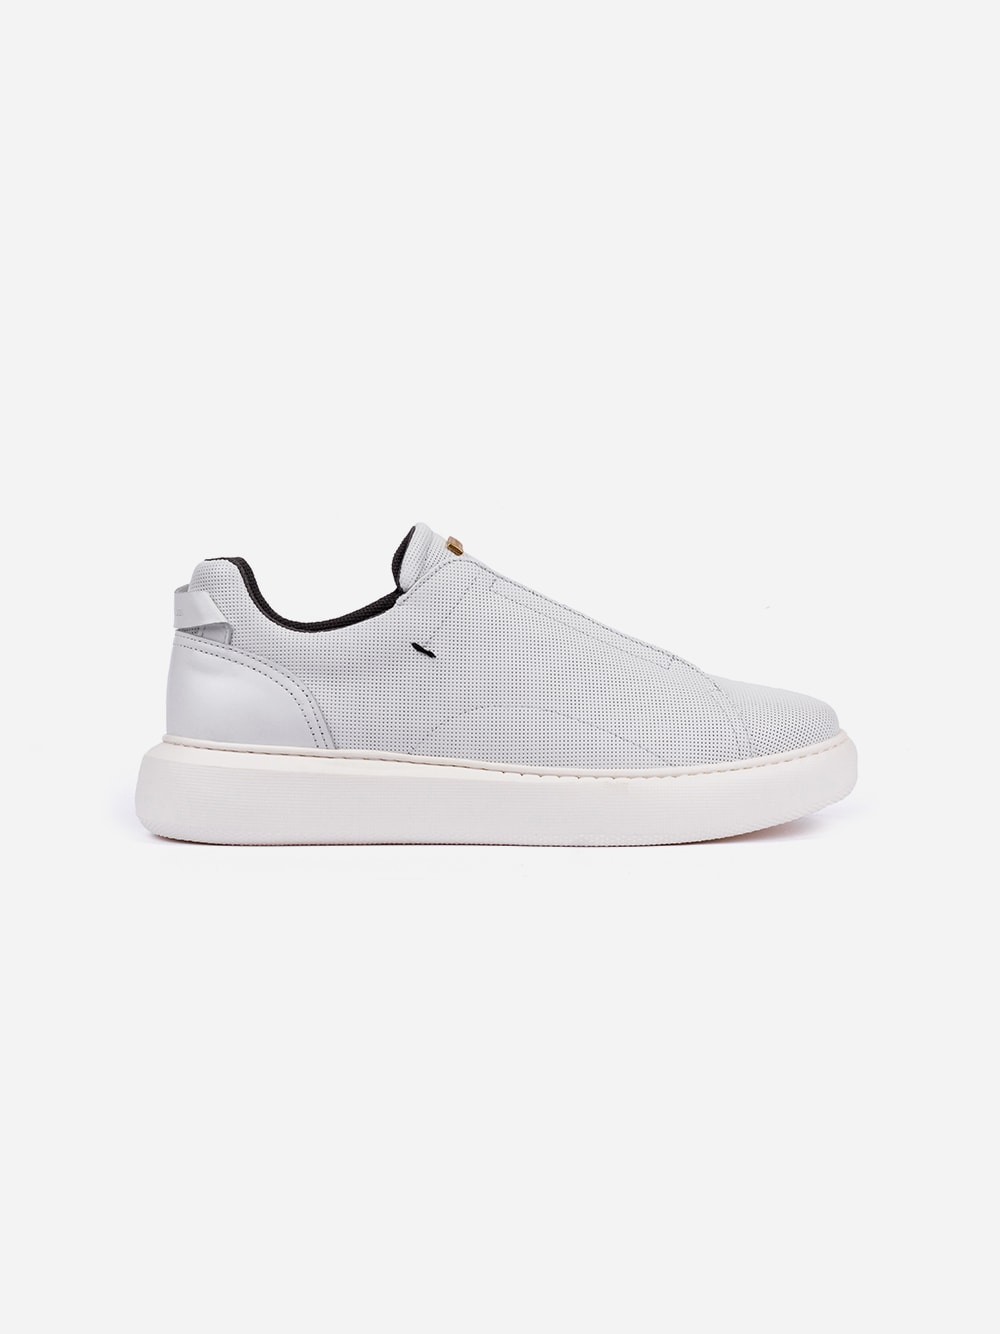 Perforated white slip-on sneakers